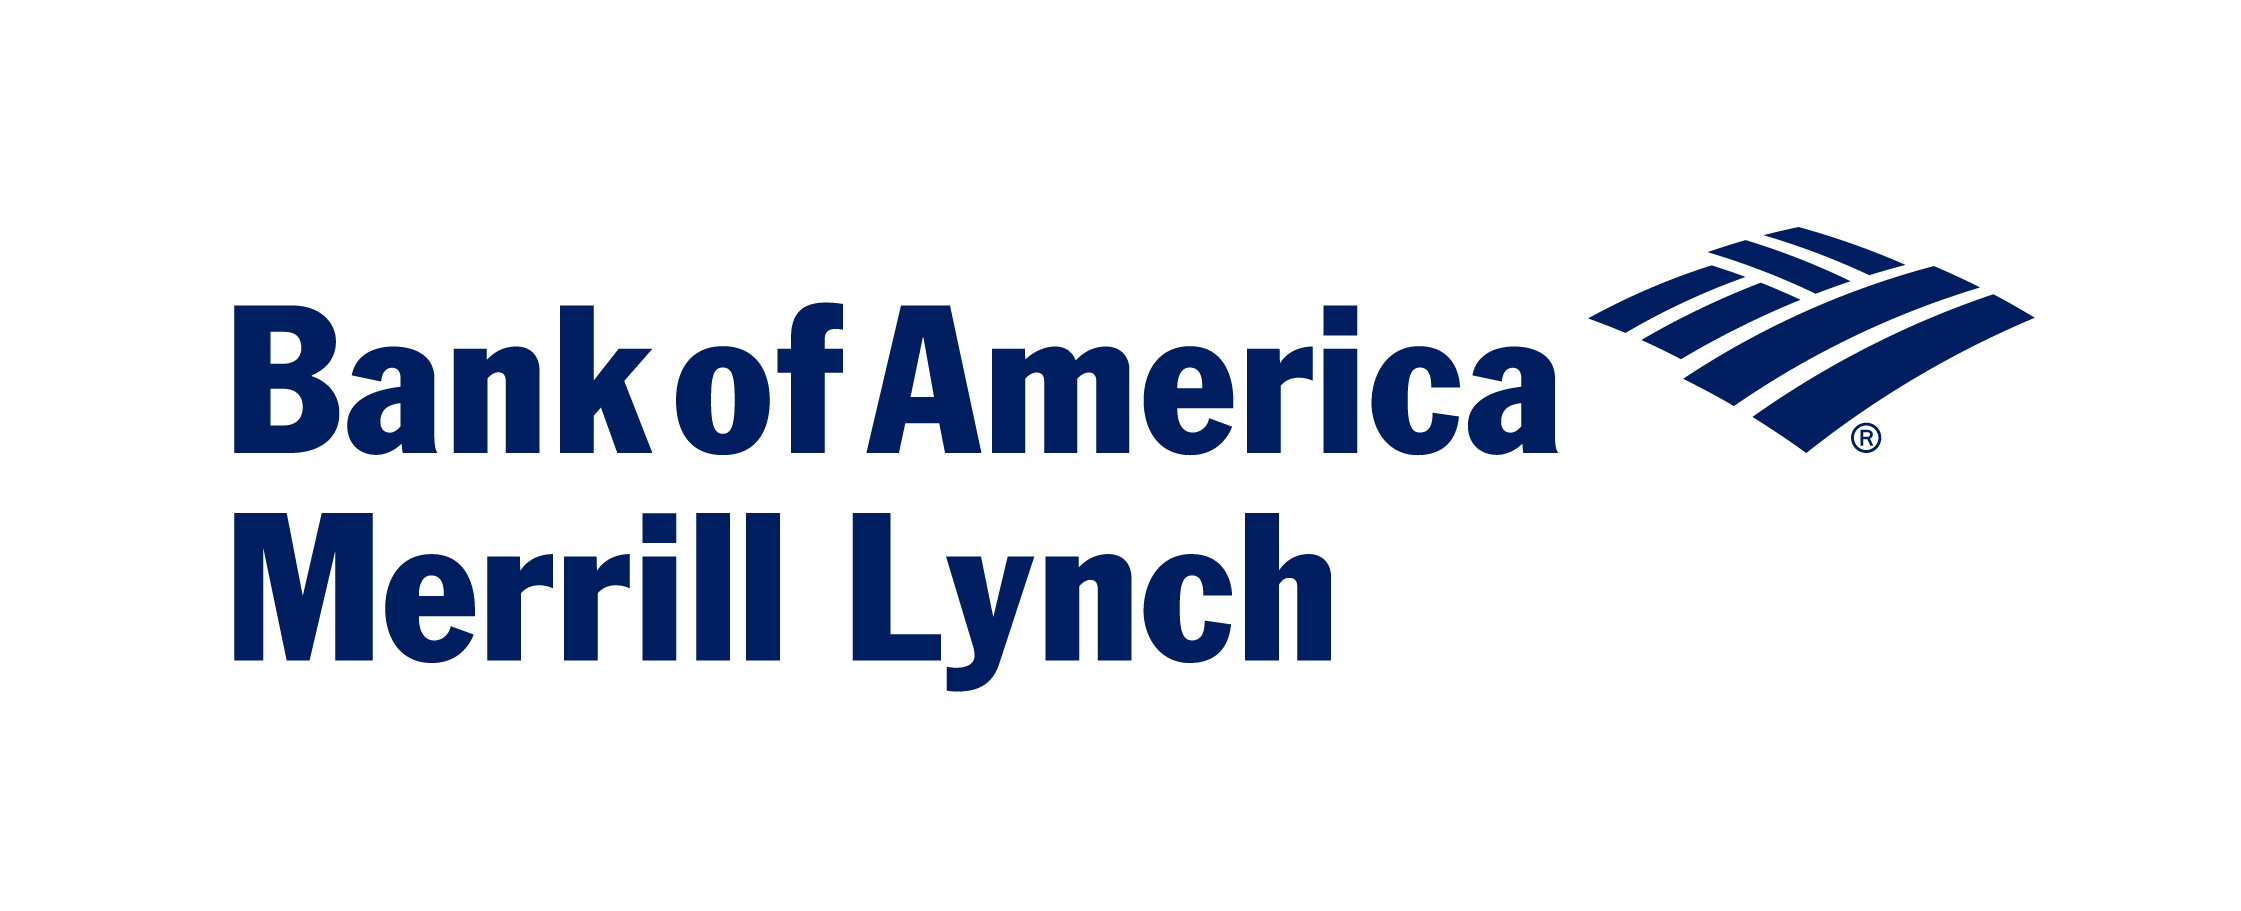 Bank of America Merril Lynch logo